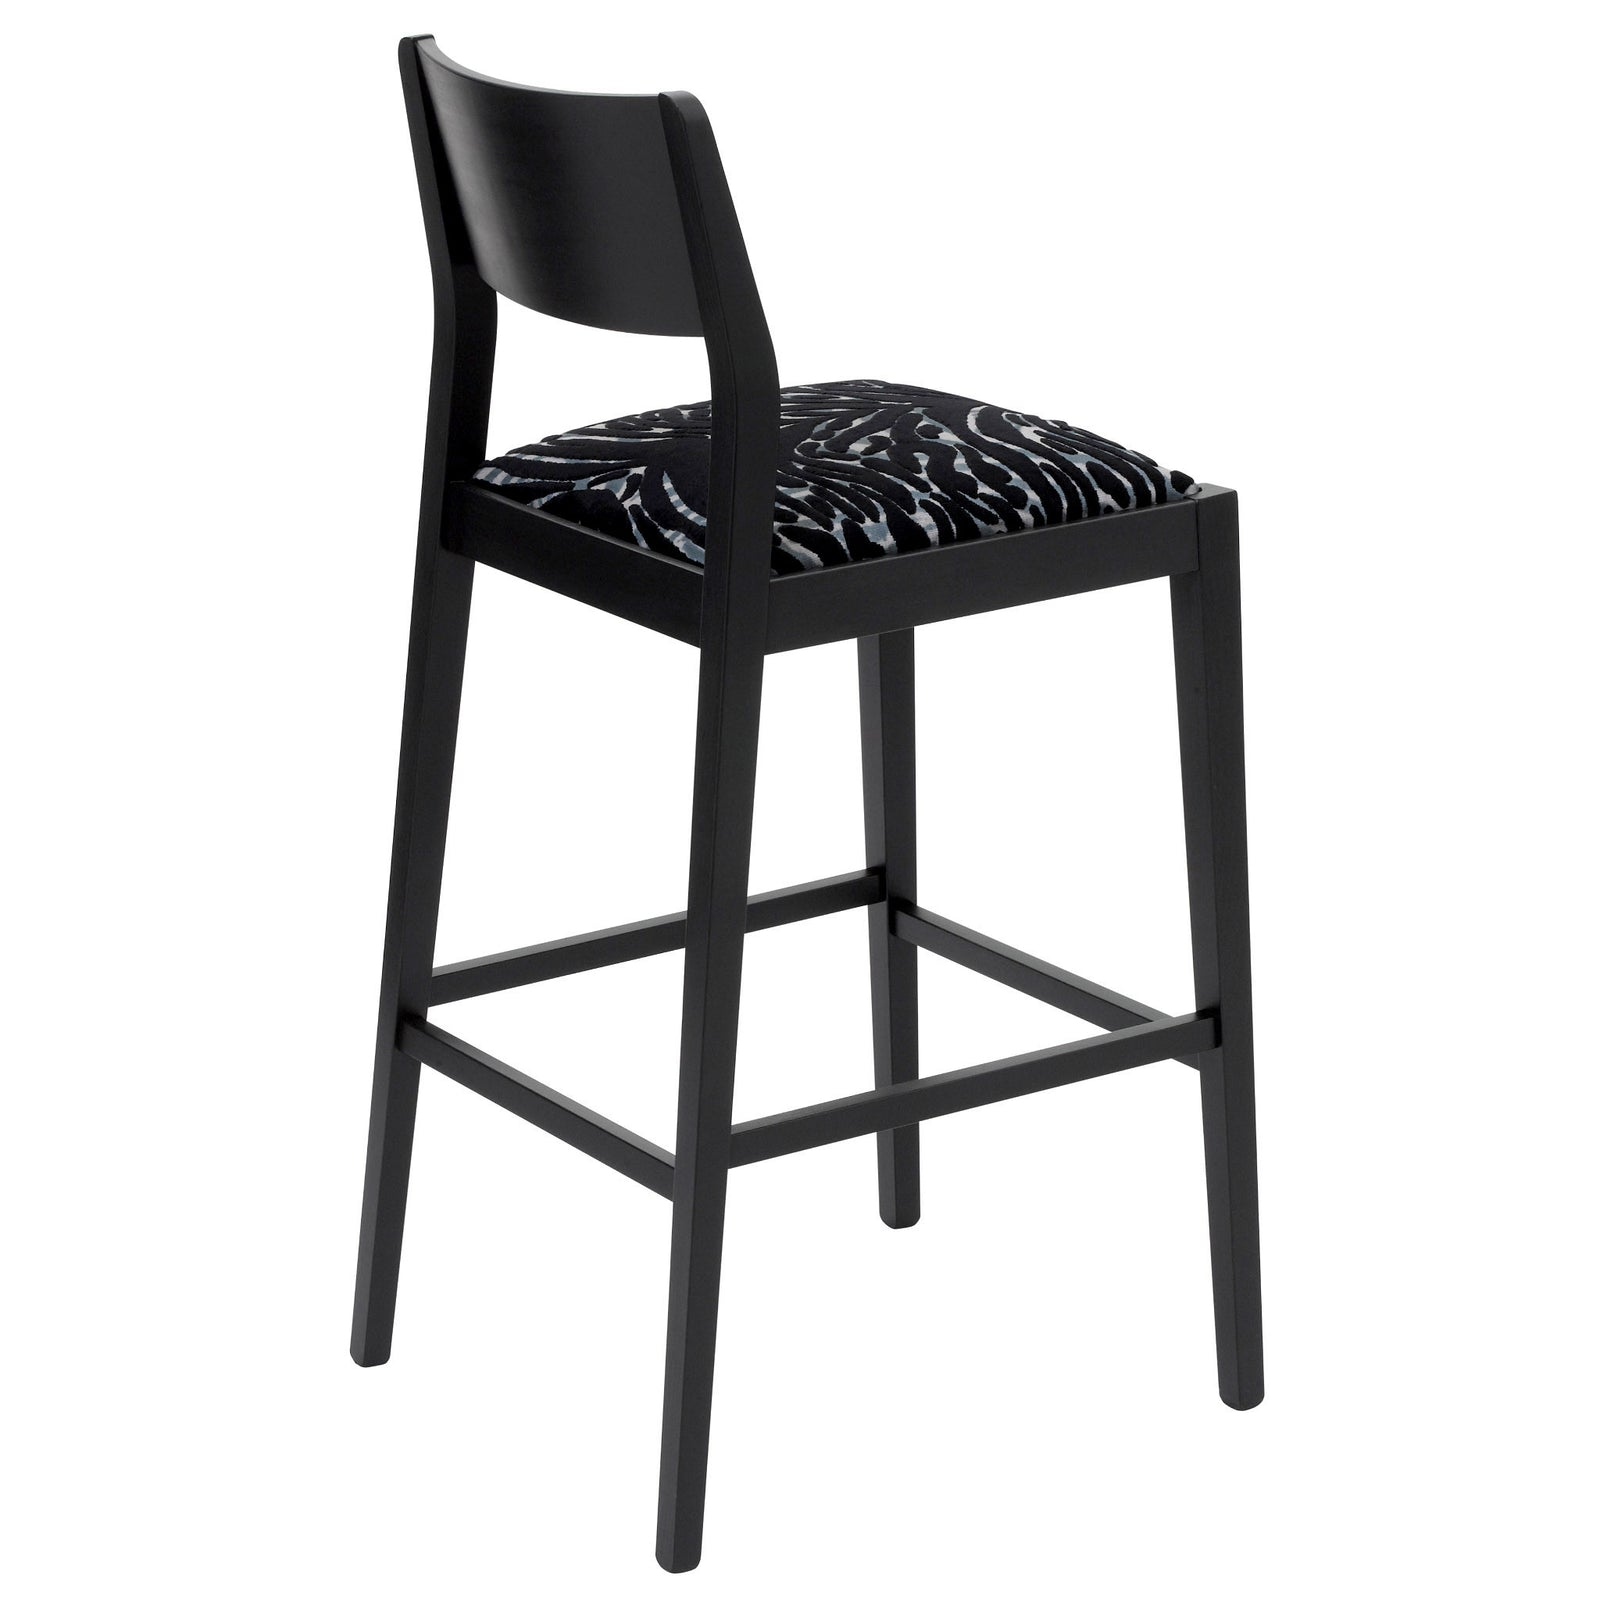 Rear view of the James Bar Stool upholstered in Soft Pantigre Onyx finished in matte black.